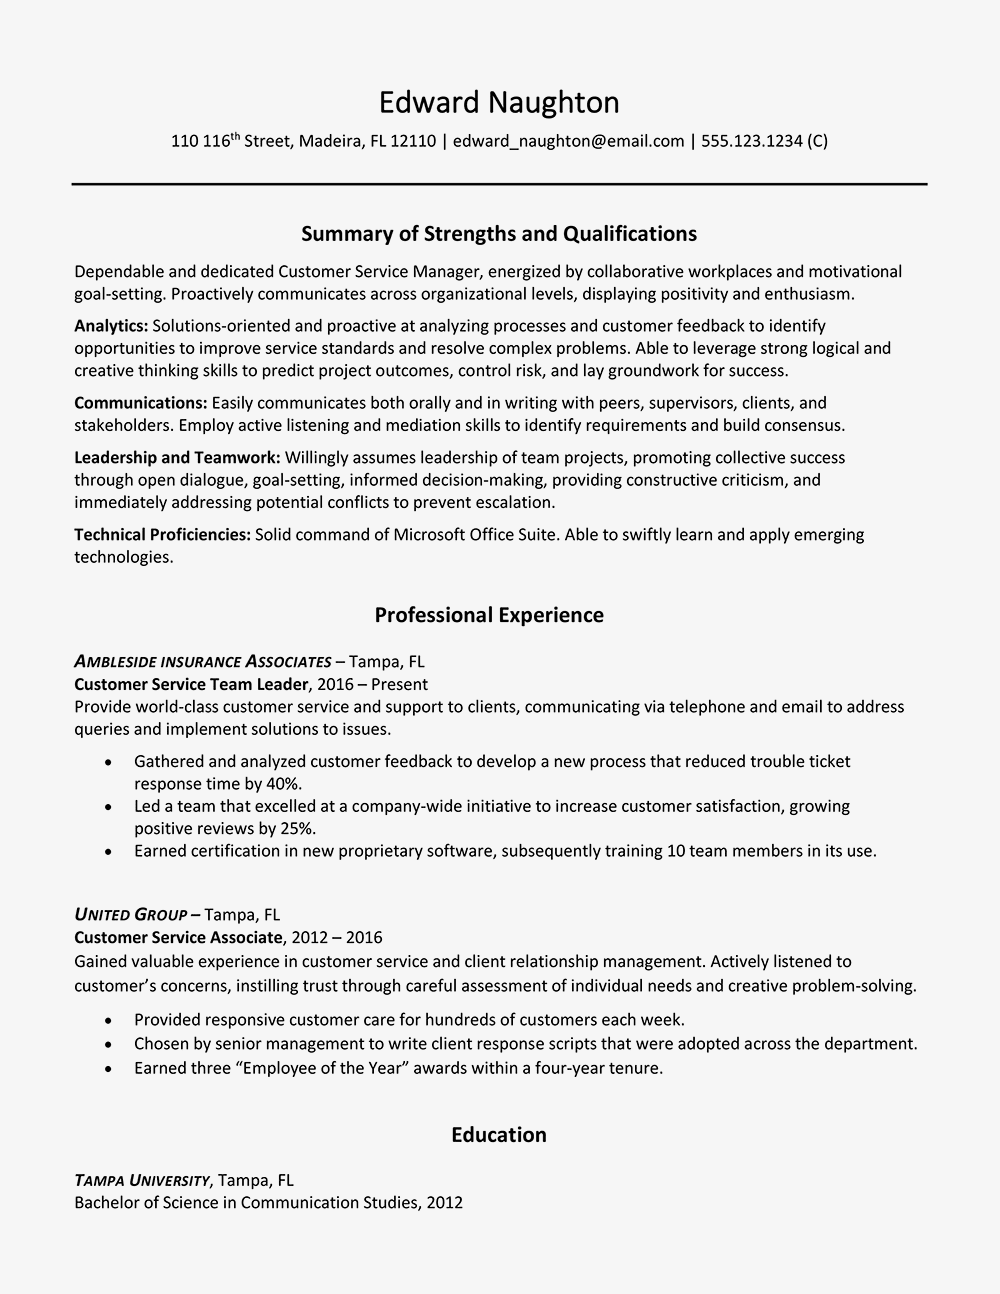 key strengths in resume